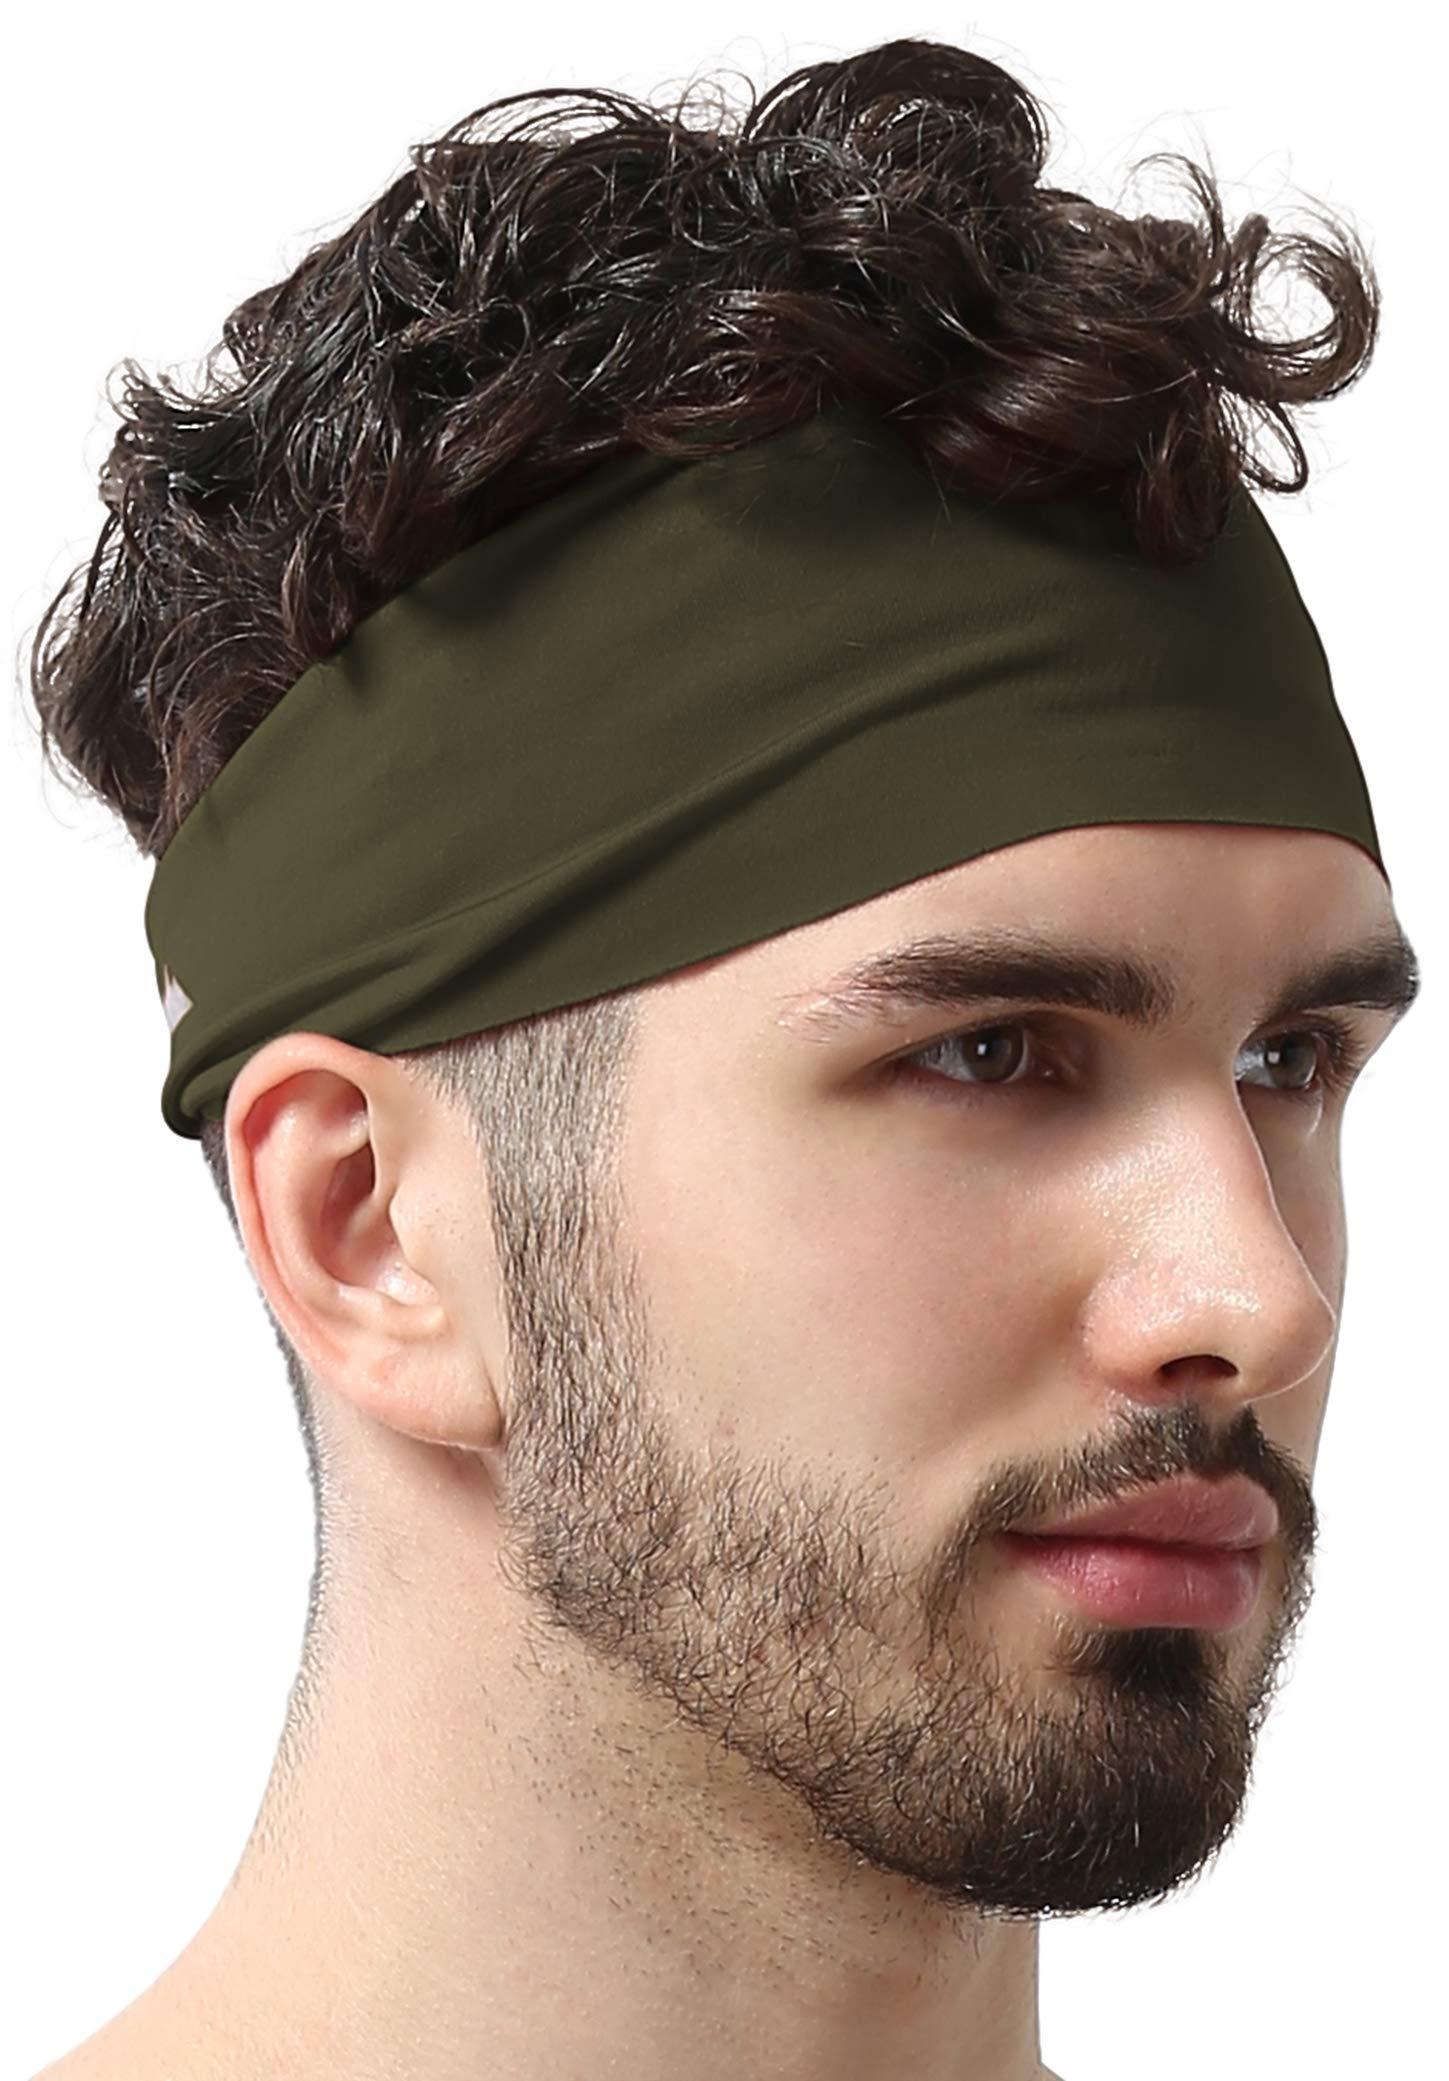 Mens Headband - Running Sweat Head Bands for Sports - Athletic Sweatbands for Workout/Exercise, Tennis & Football - Ultimate Performance Stretch & Moisture Wicking by Tough Headwear